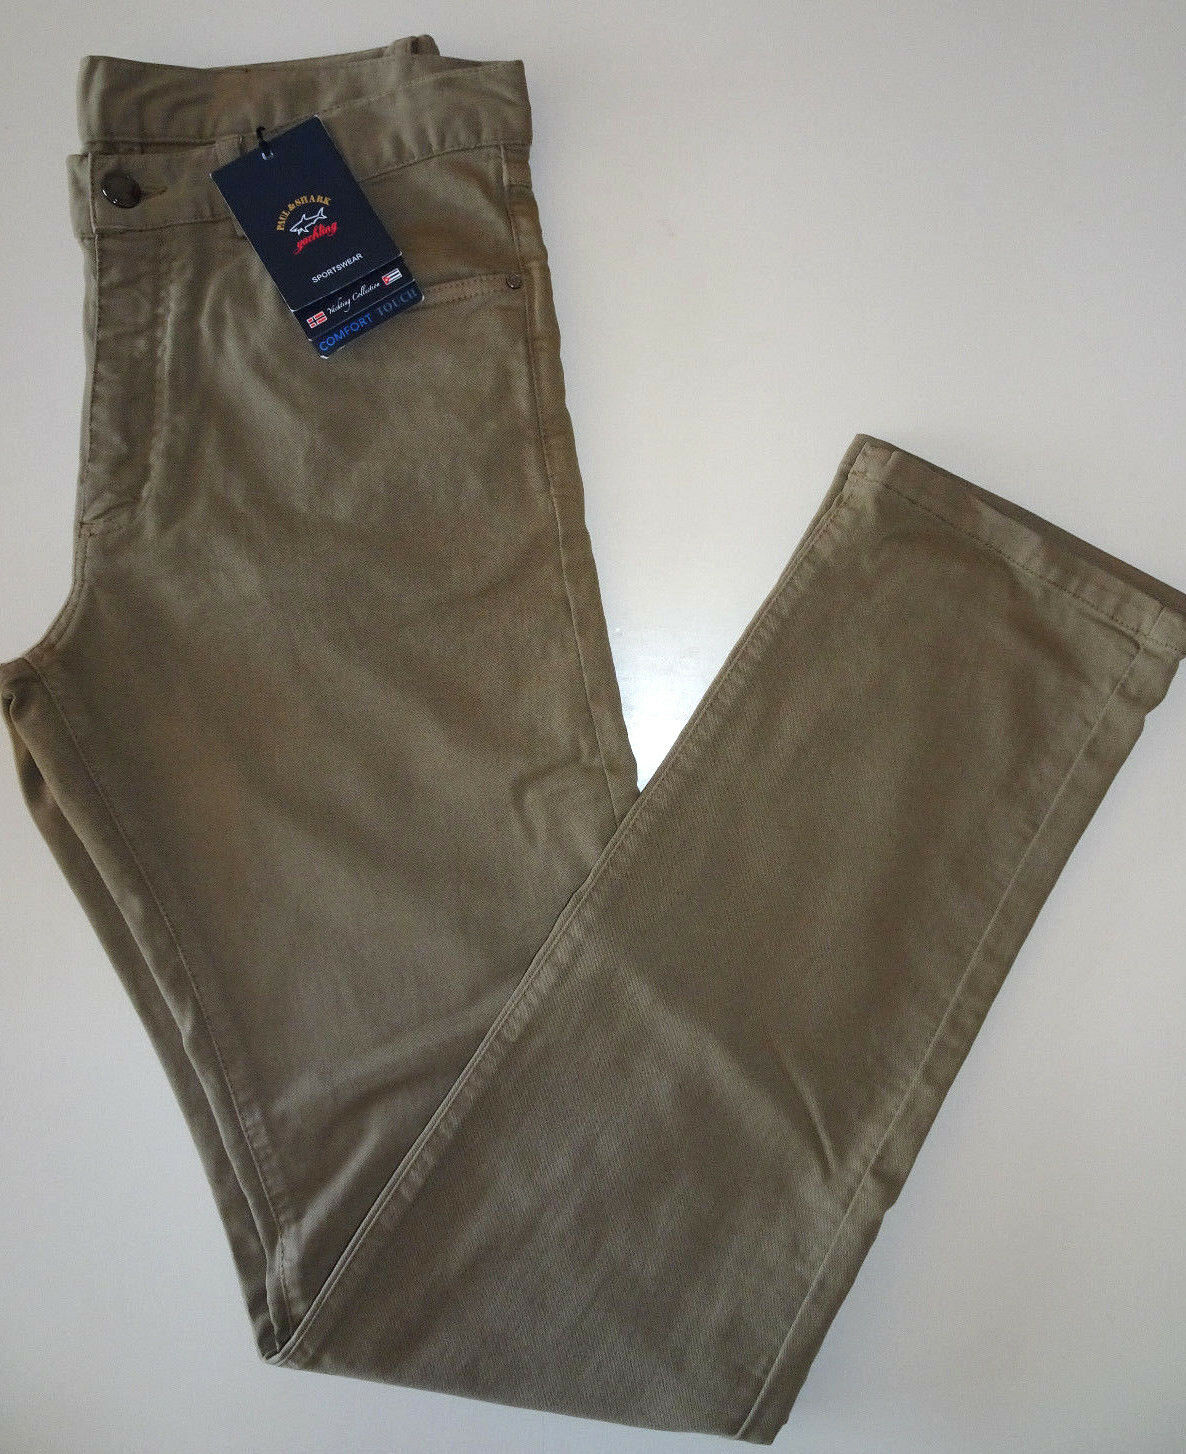 PAUL & SHARK Yachting Luxus Comfort Touch Hose Khaki Gr.S  AKTION  NEU